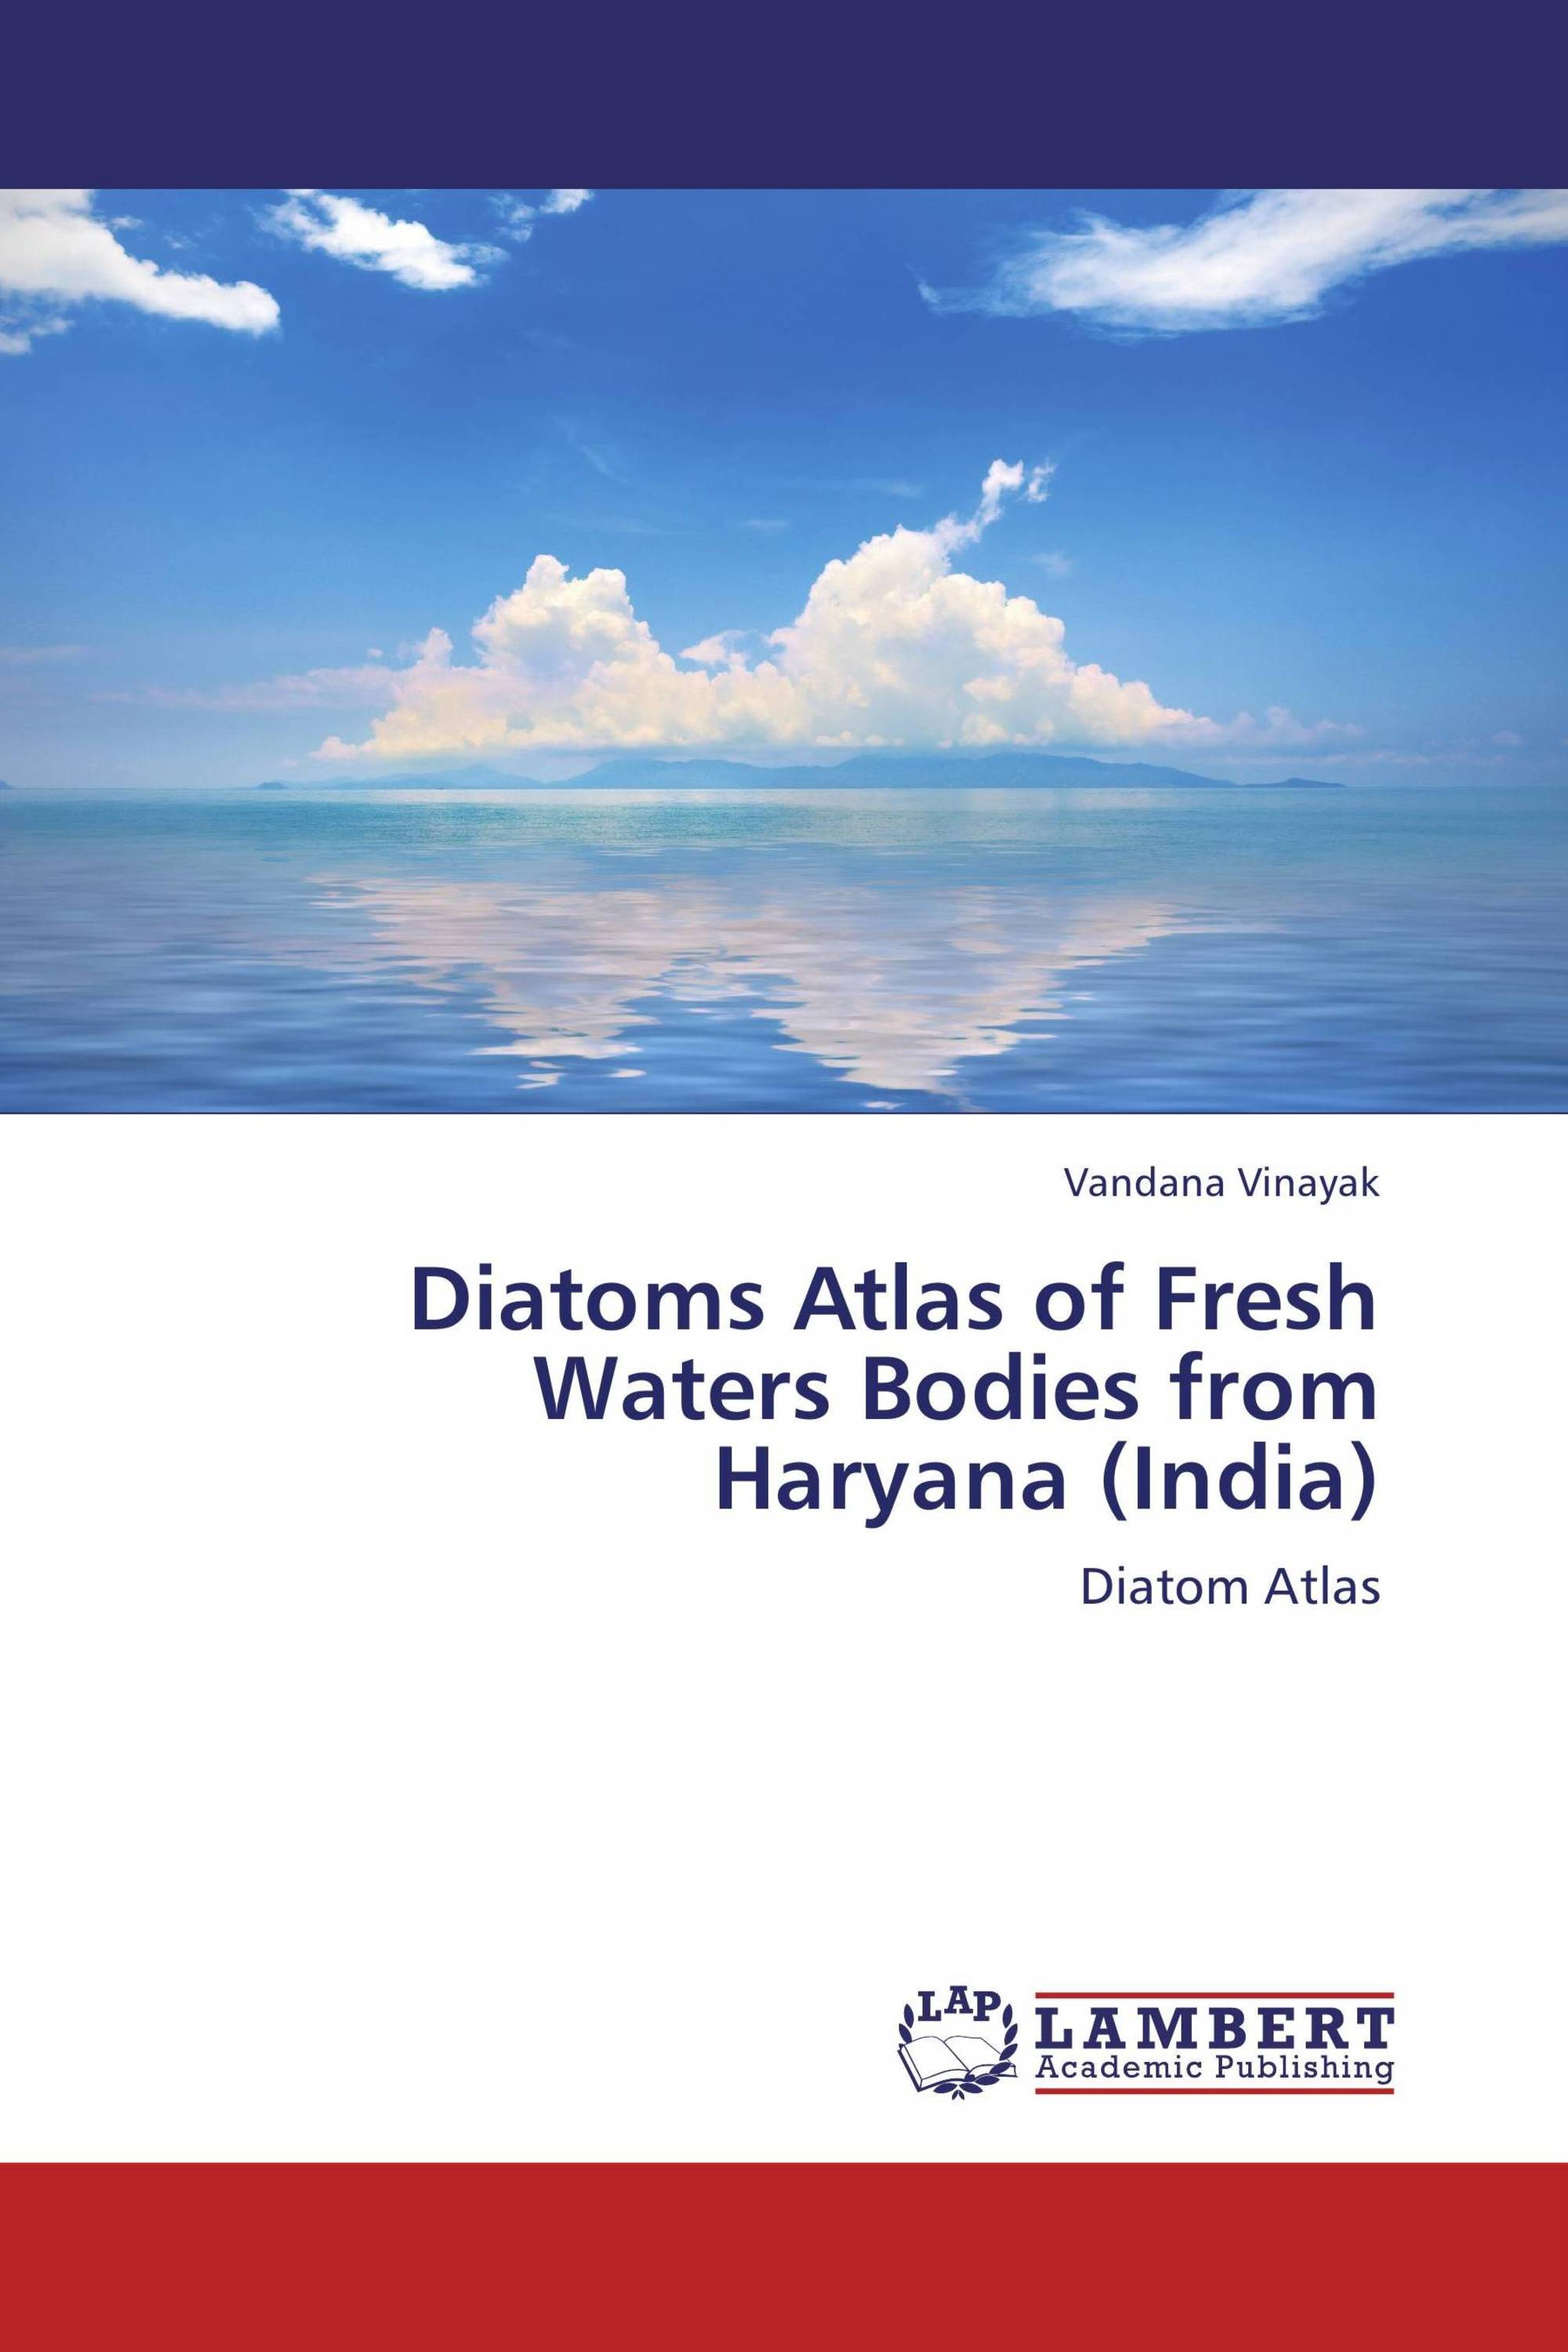 Diatoms Atlas of Fresh Waters Bodies from Haryana (India)